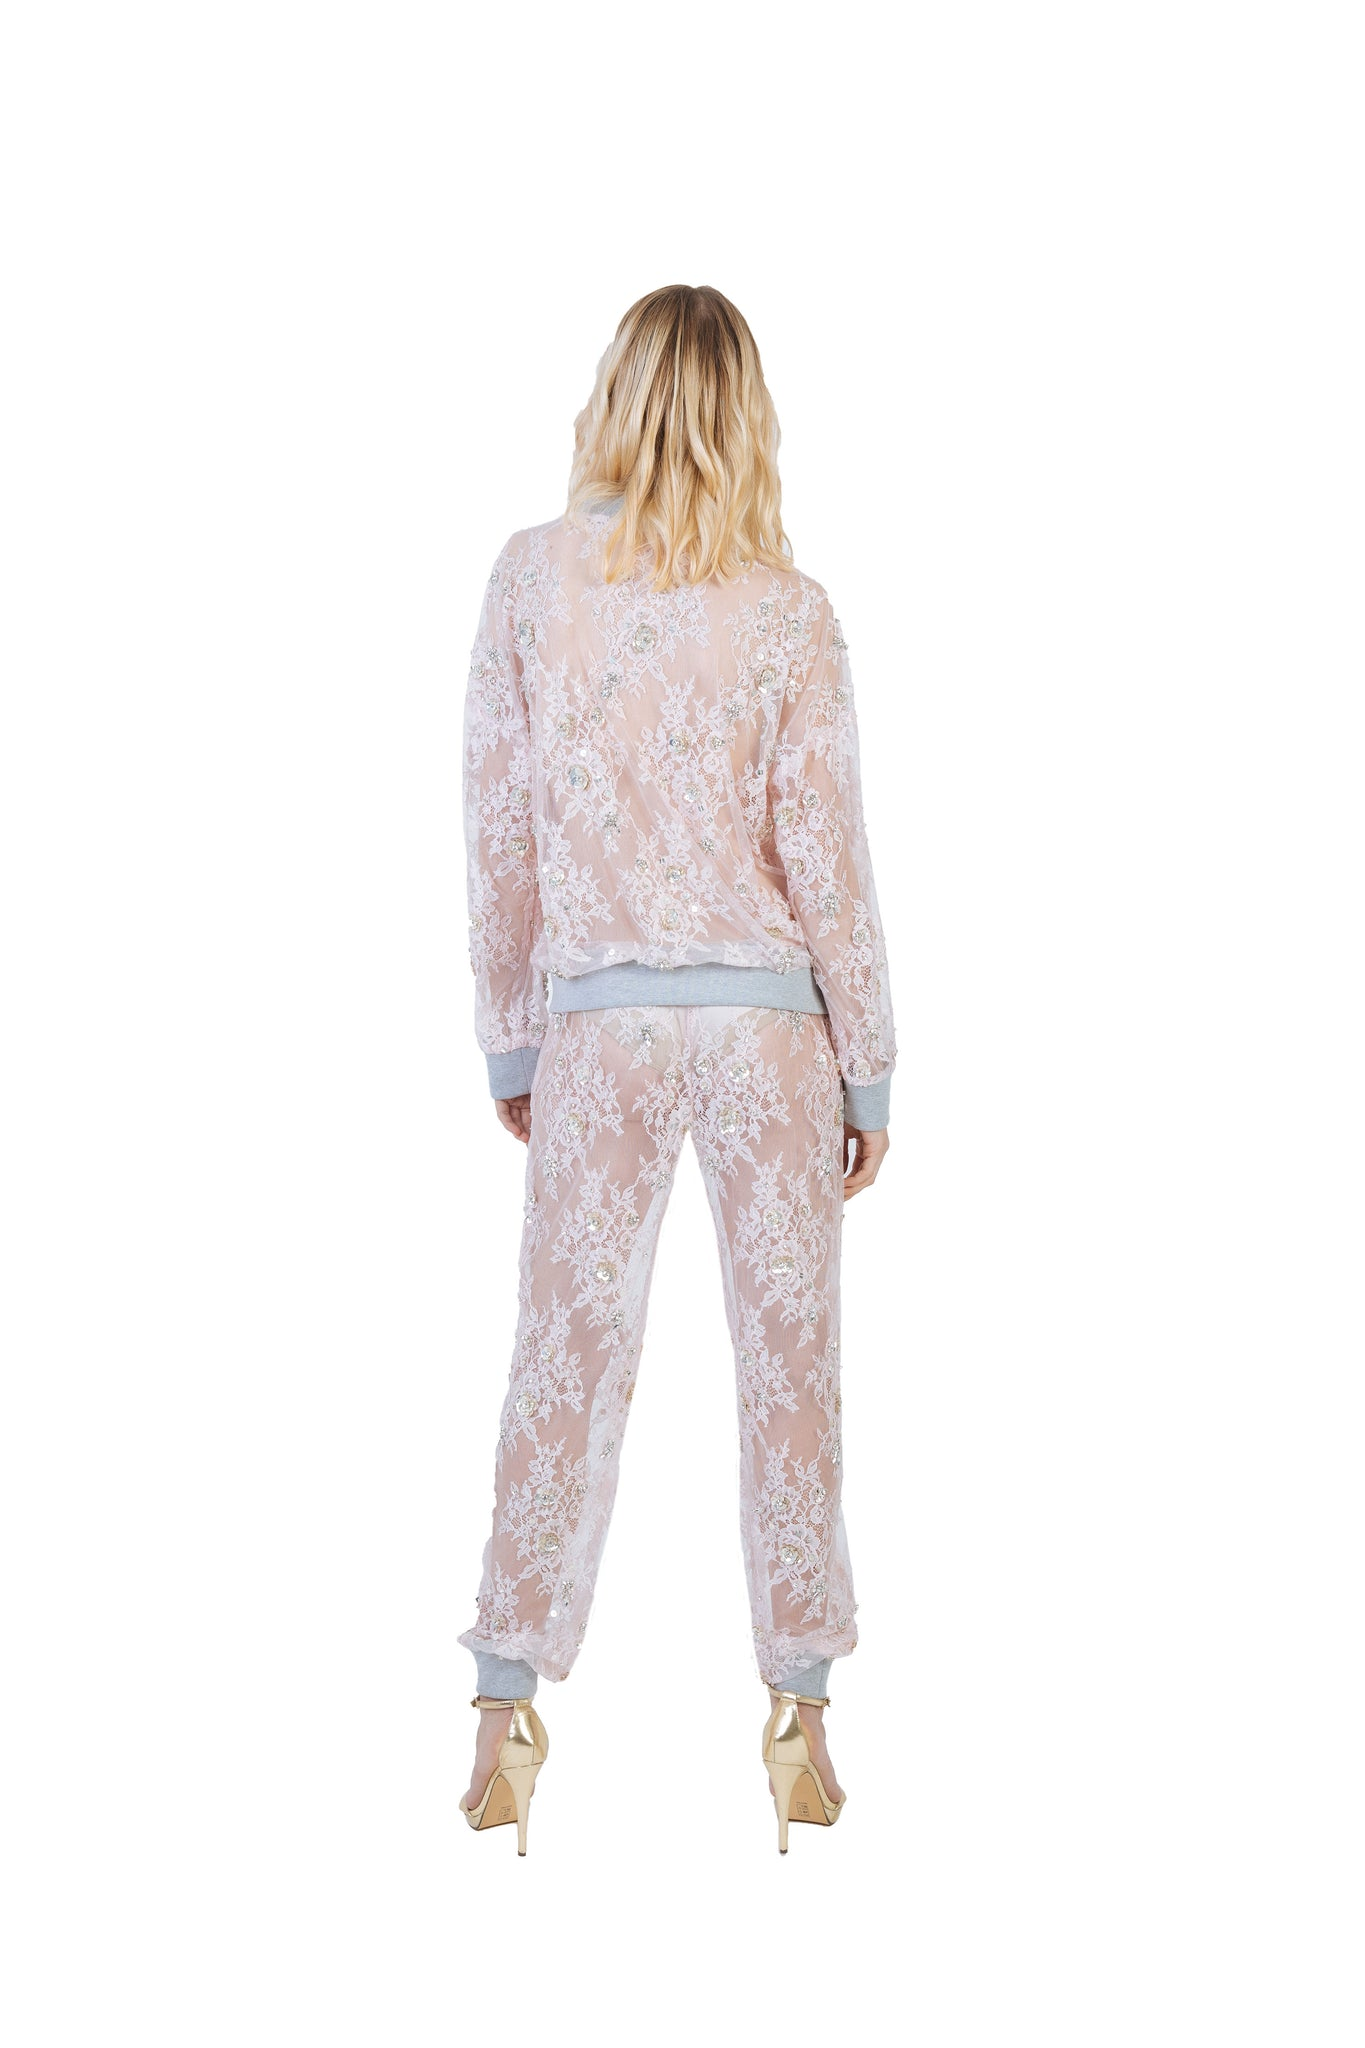 Nomad VII Chantilly Lace Swarovski Crystal Beaded Bomber Jacket - NOMAD VII X ANNE BOWEN